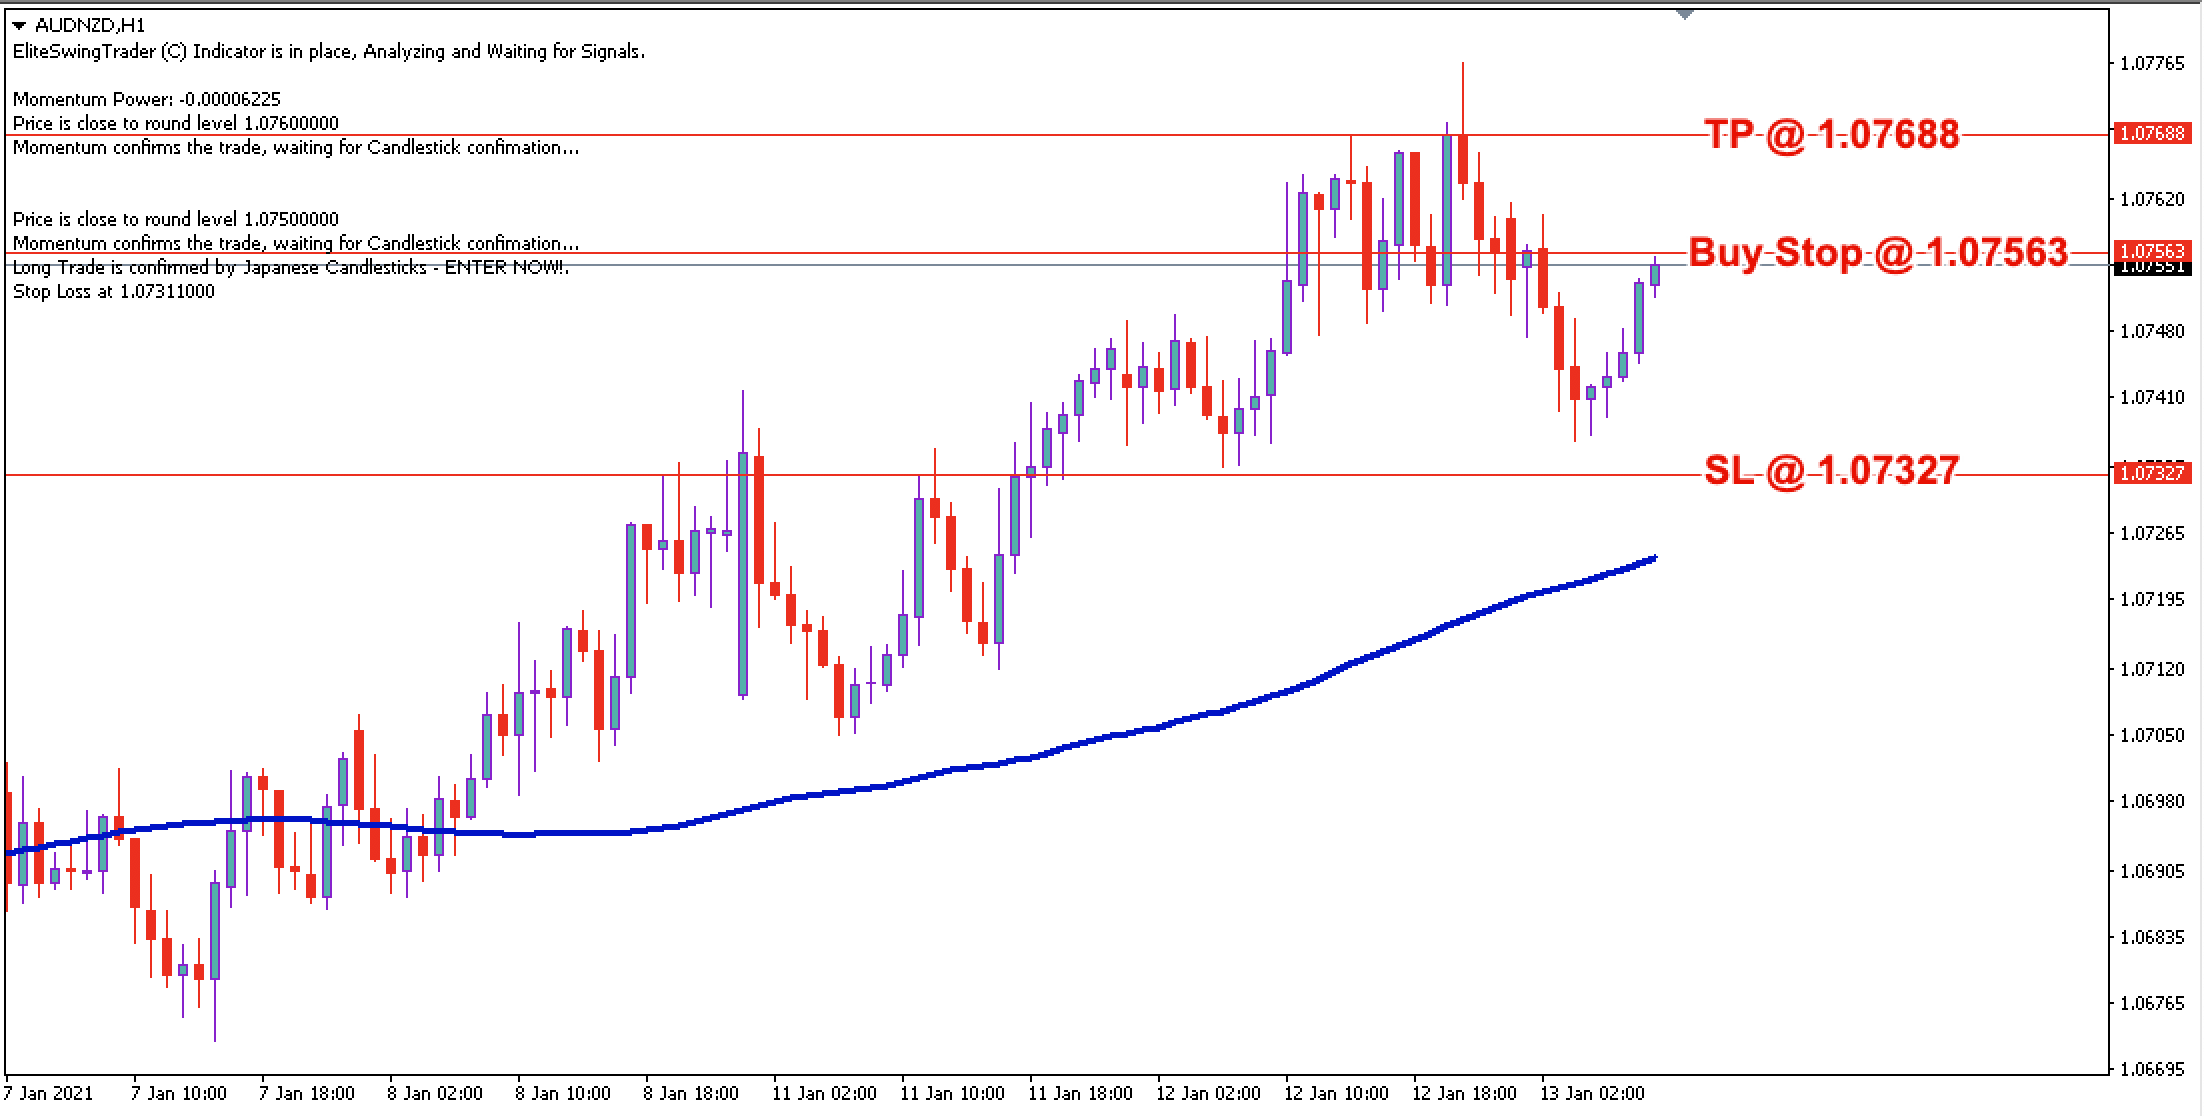 AUD/NZD Daily Price Forecast - 13th Jan 2021